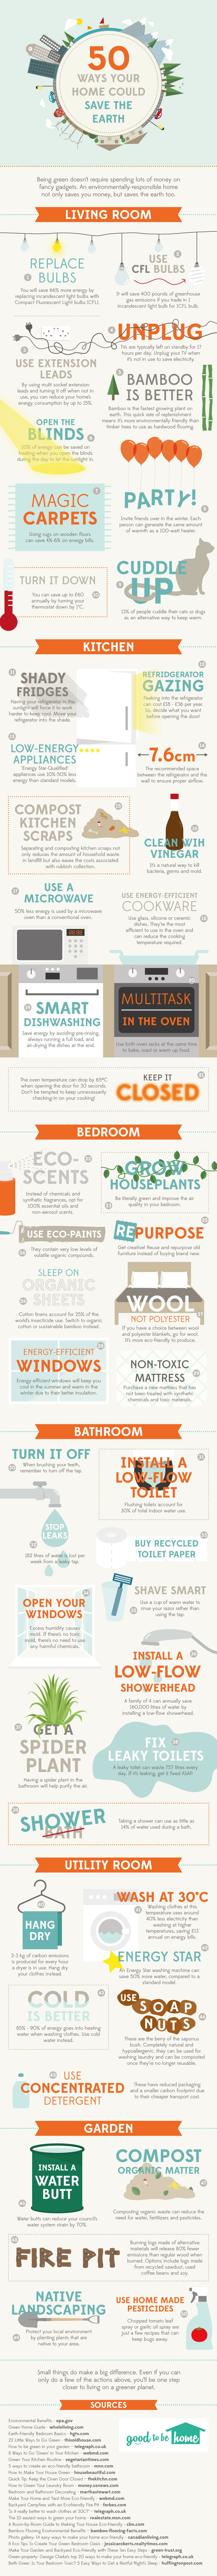 50 Cost-Efficient Ways To Make Your Home More Eco-Friendly | HuffPost